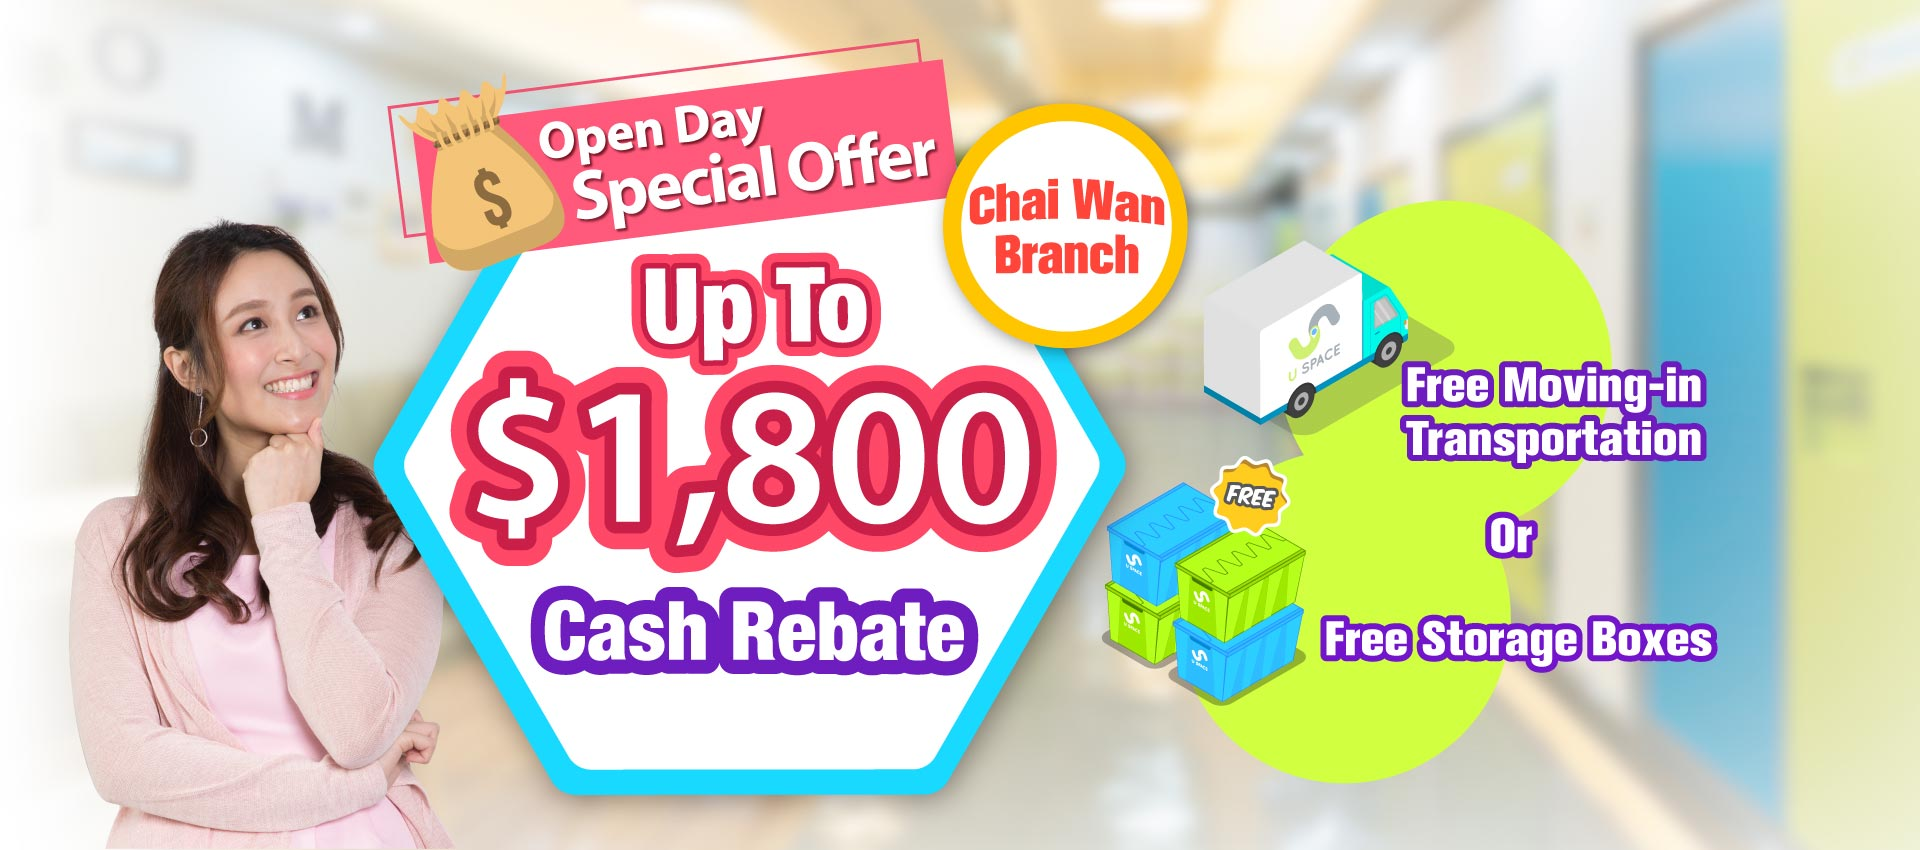 Chai Wan Branch Open Day:Up to $1,800 Cash Rebate Plus FREE Moving-in Transportation or FREE Storage Boxes